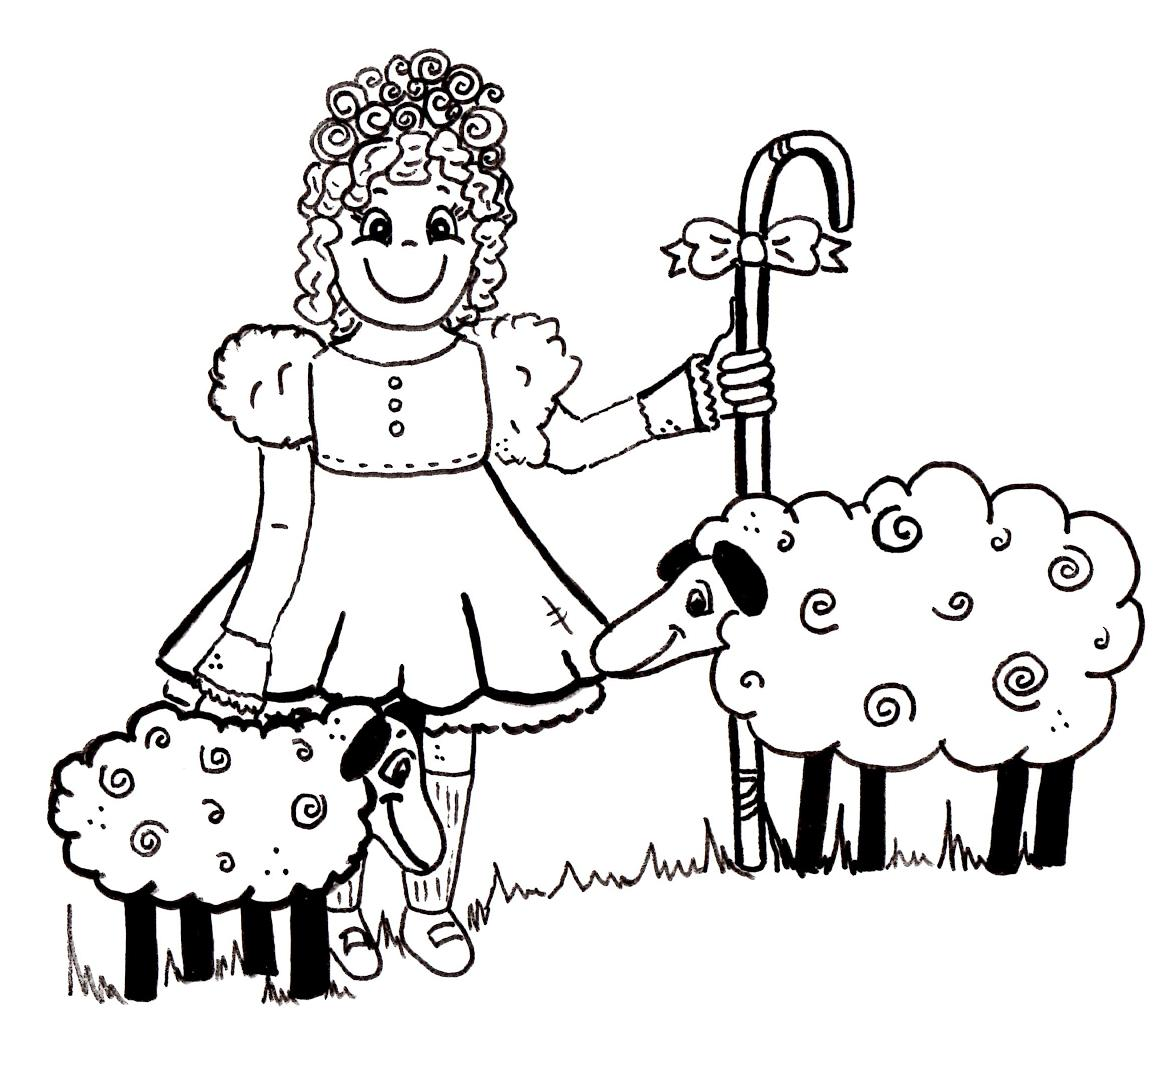 Cartoon Little Bo Peep Coloring Page